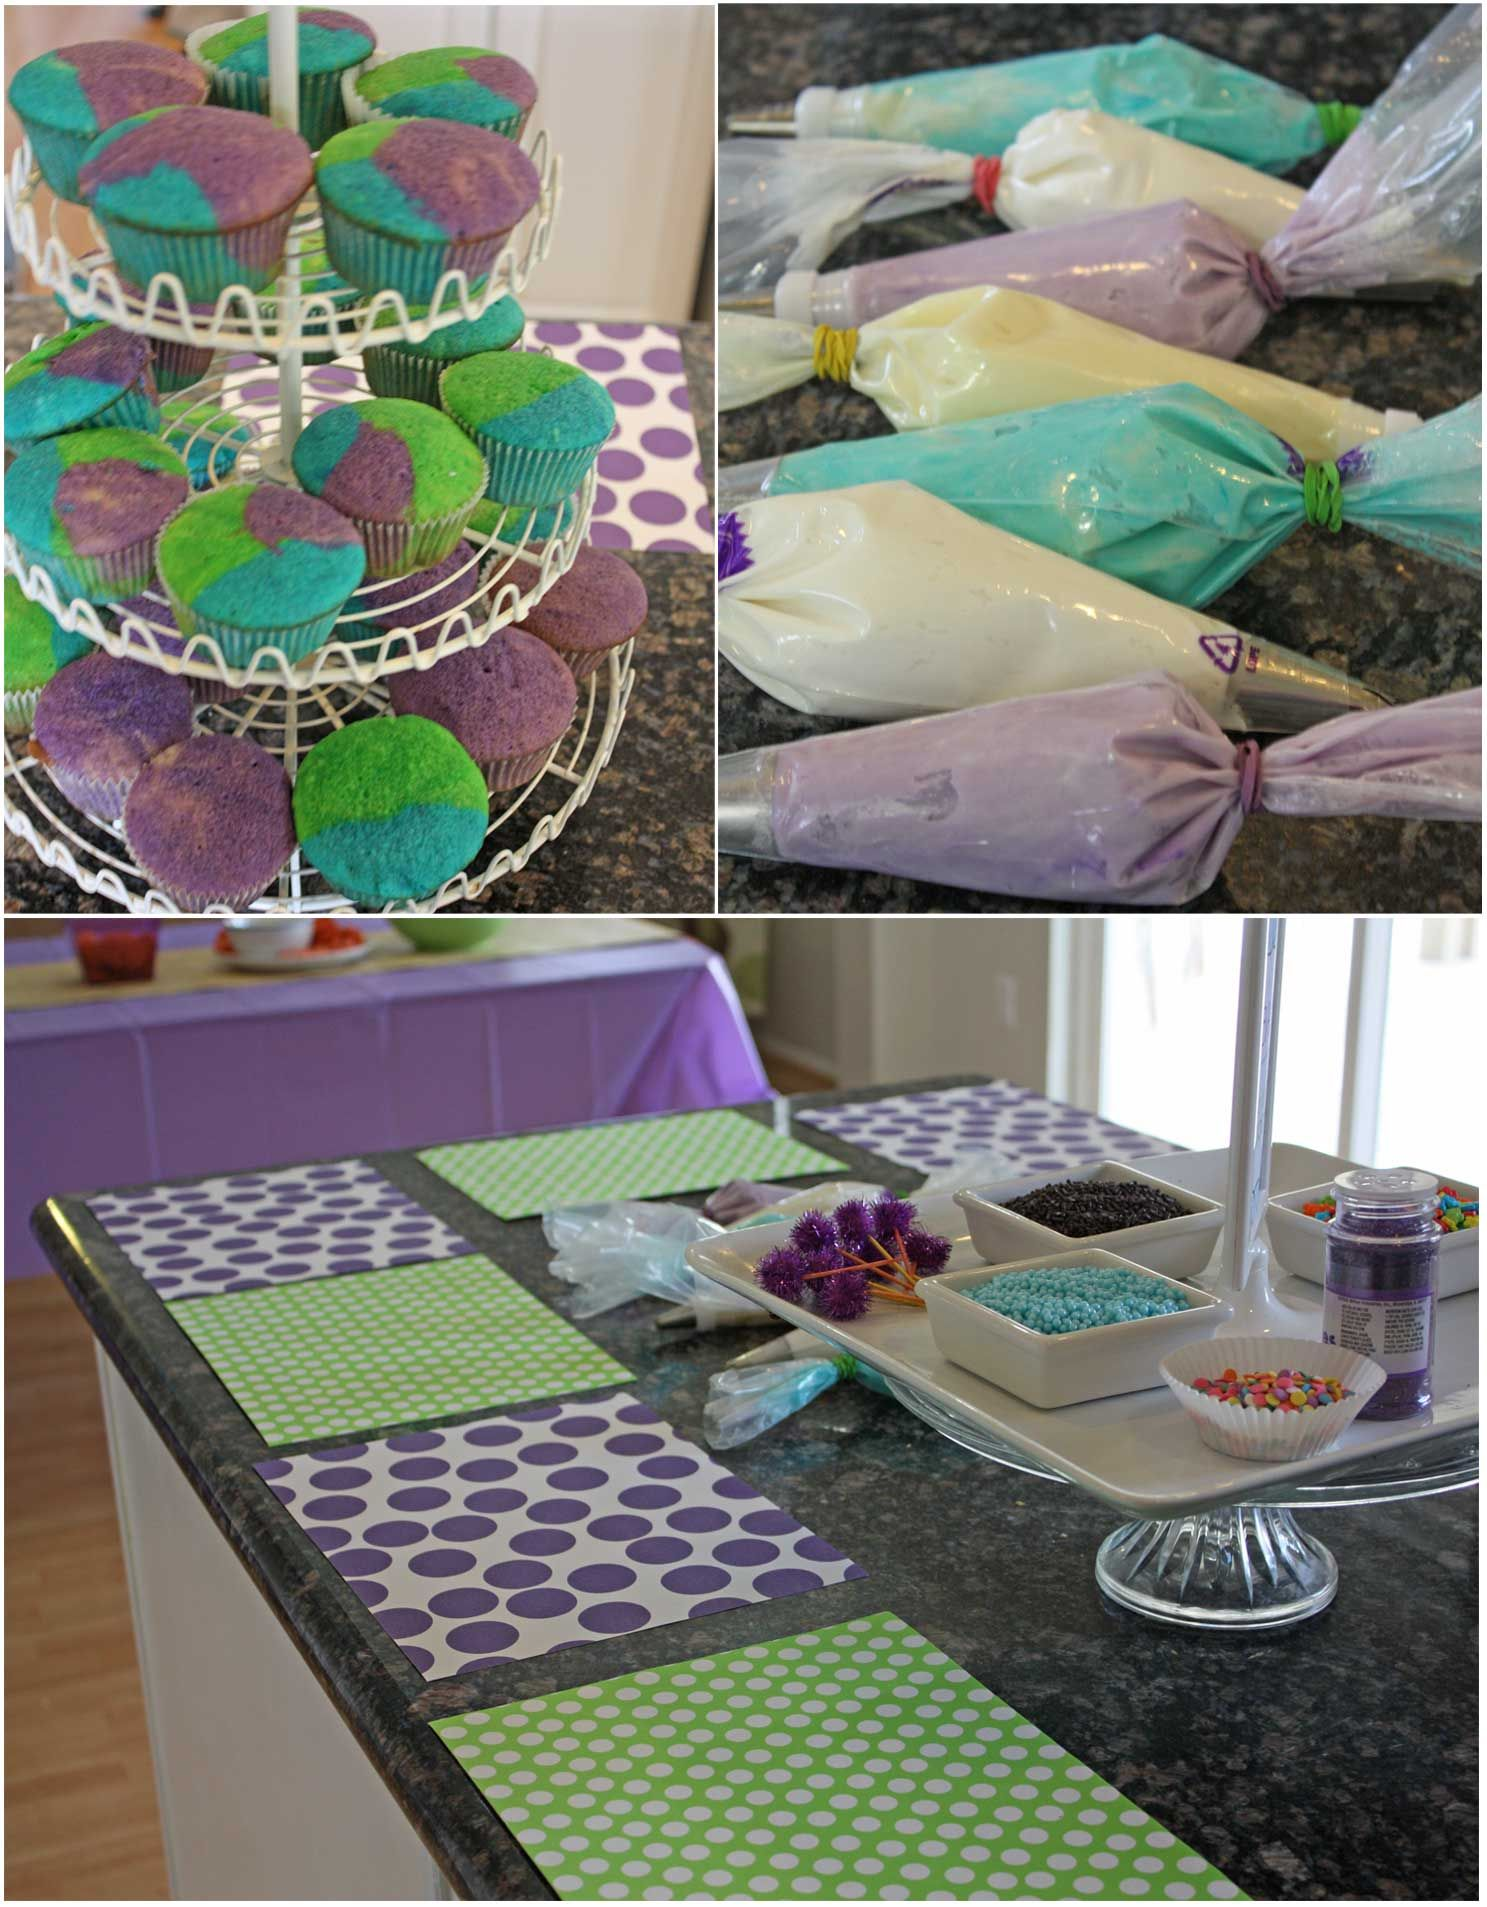 Baking Amp Craft Party For Tweens